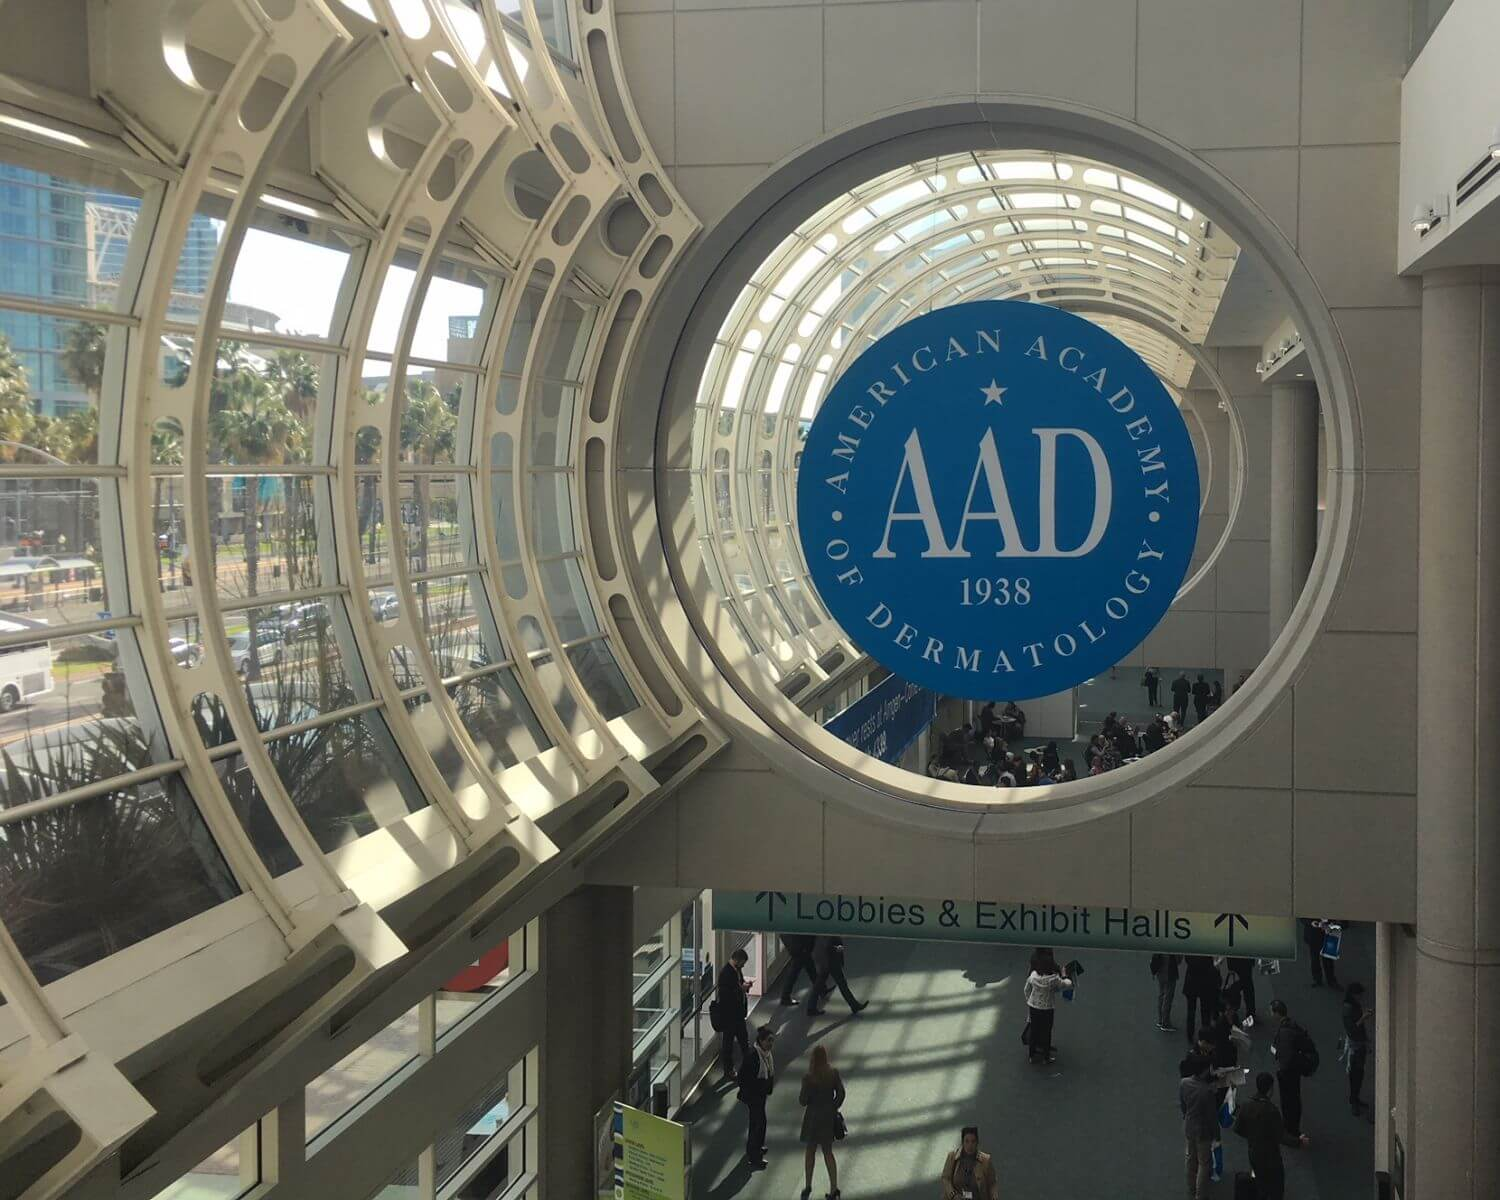 2018 AAD annual meeting